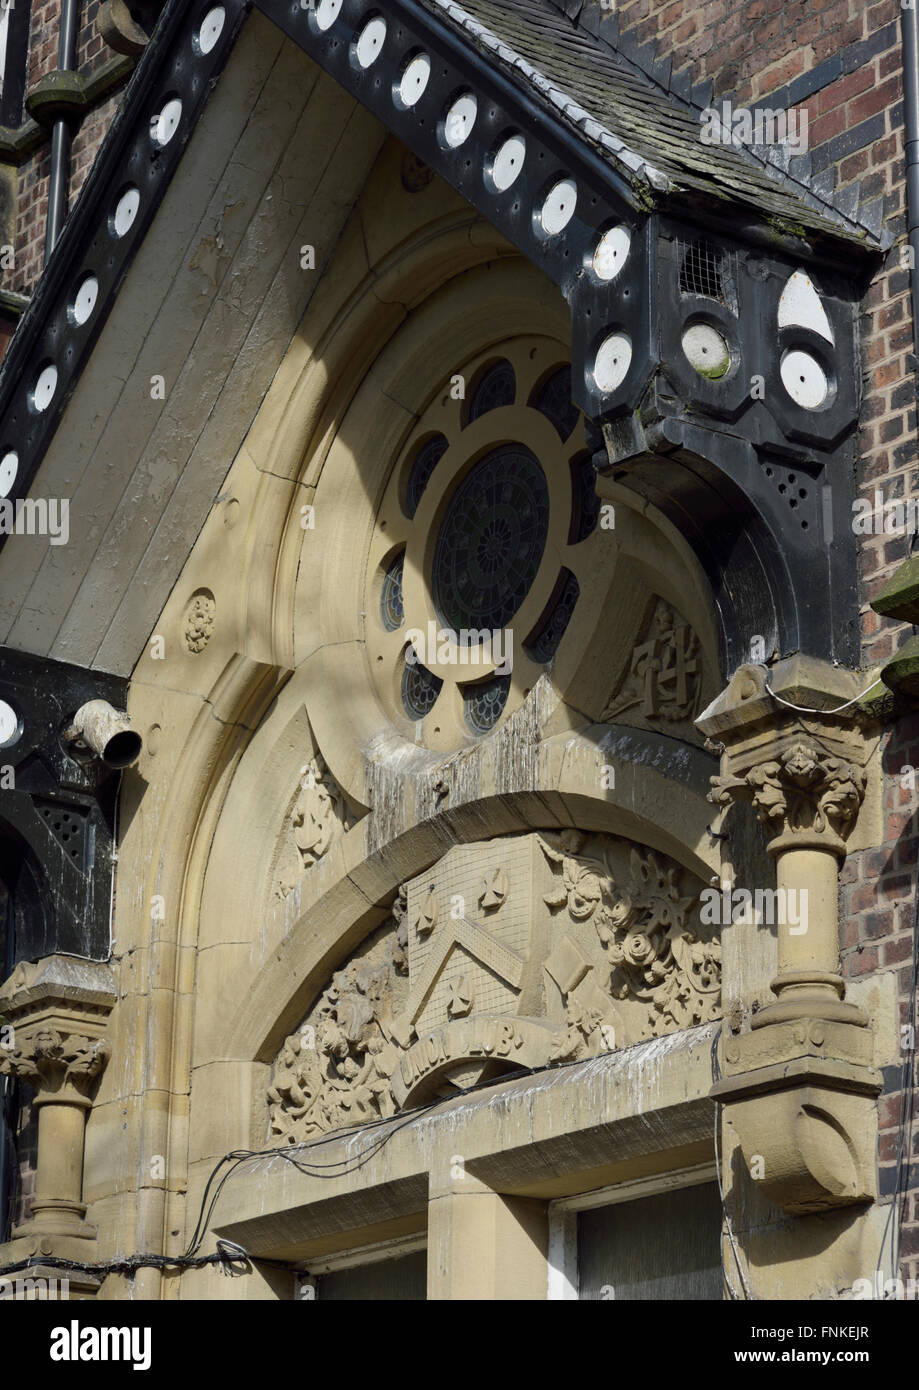 Ornamental stonework stained by pigeon droppings in bury lancashire - Stock Image